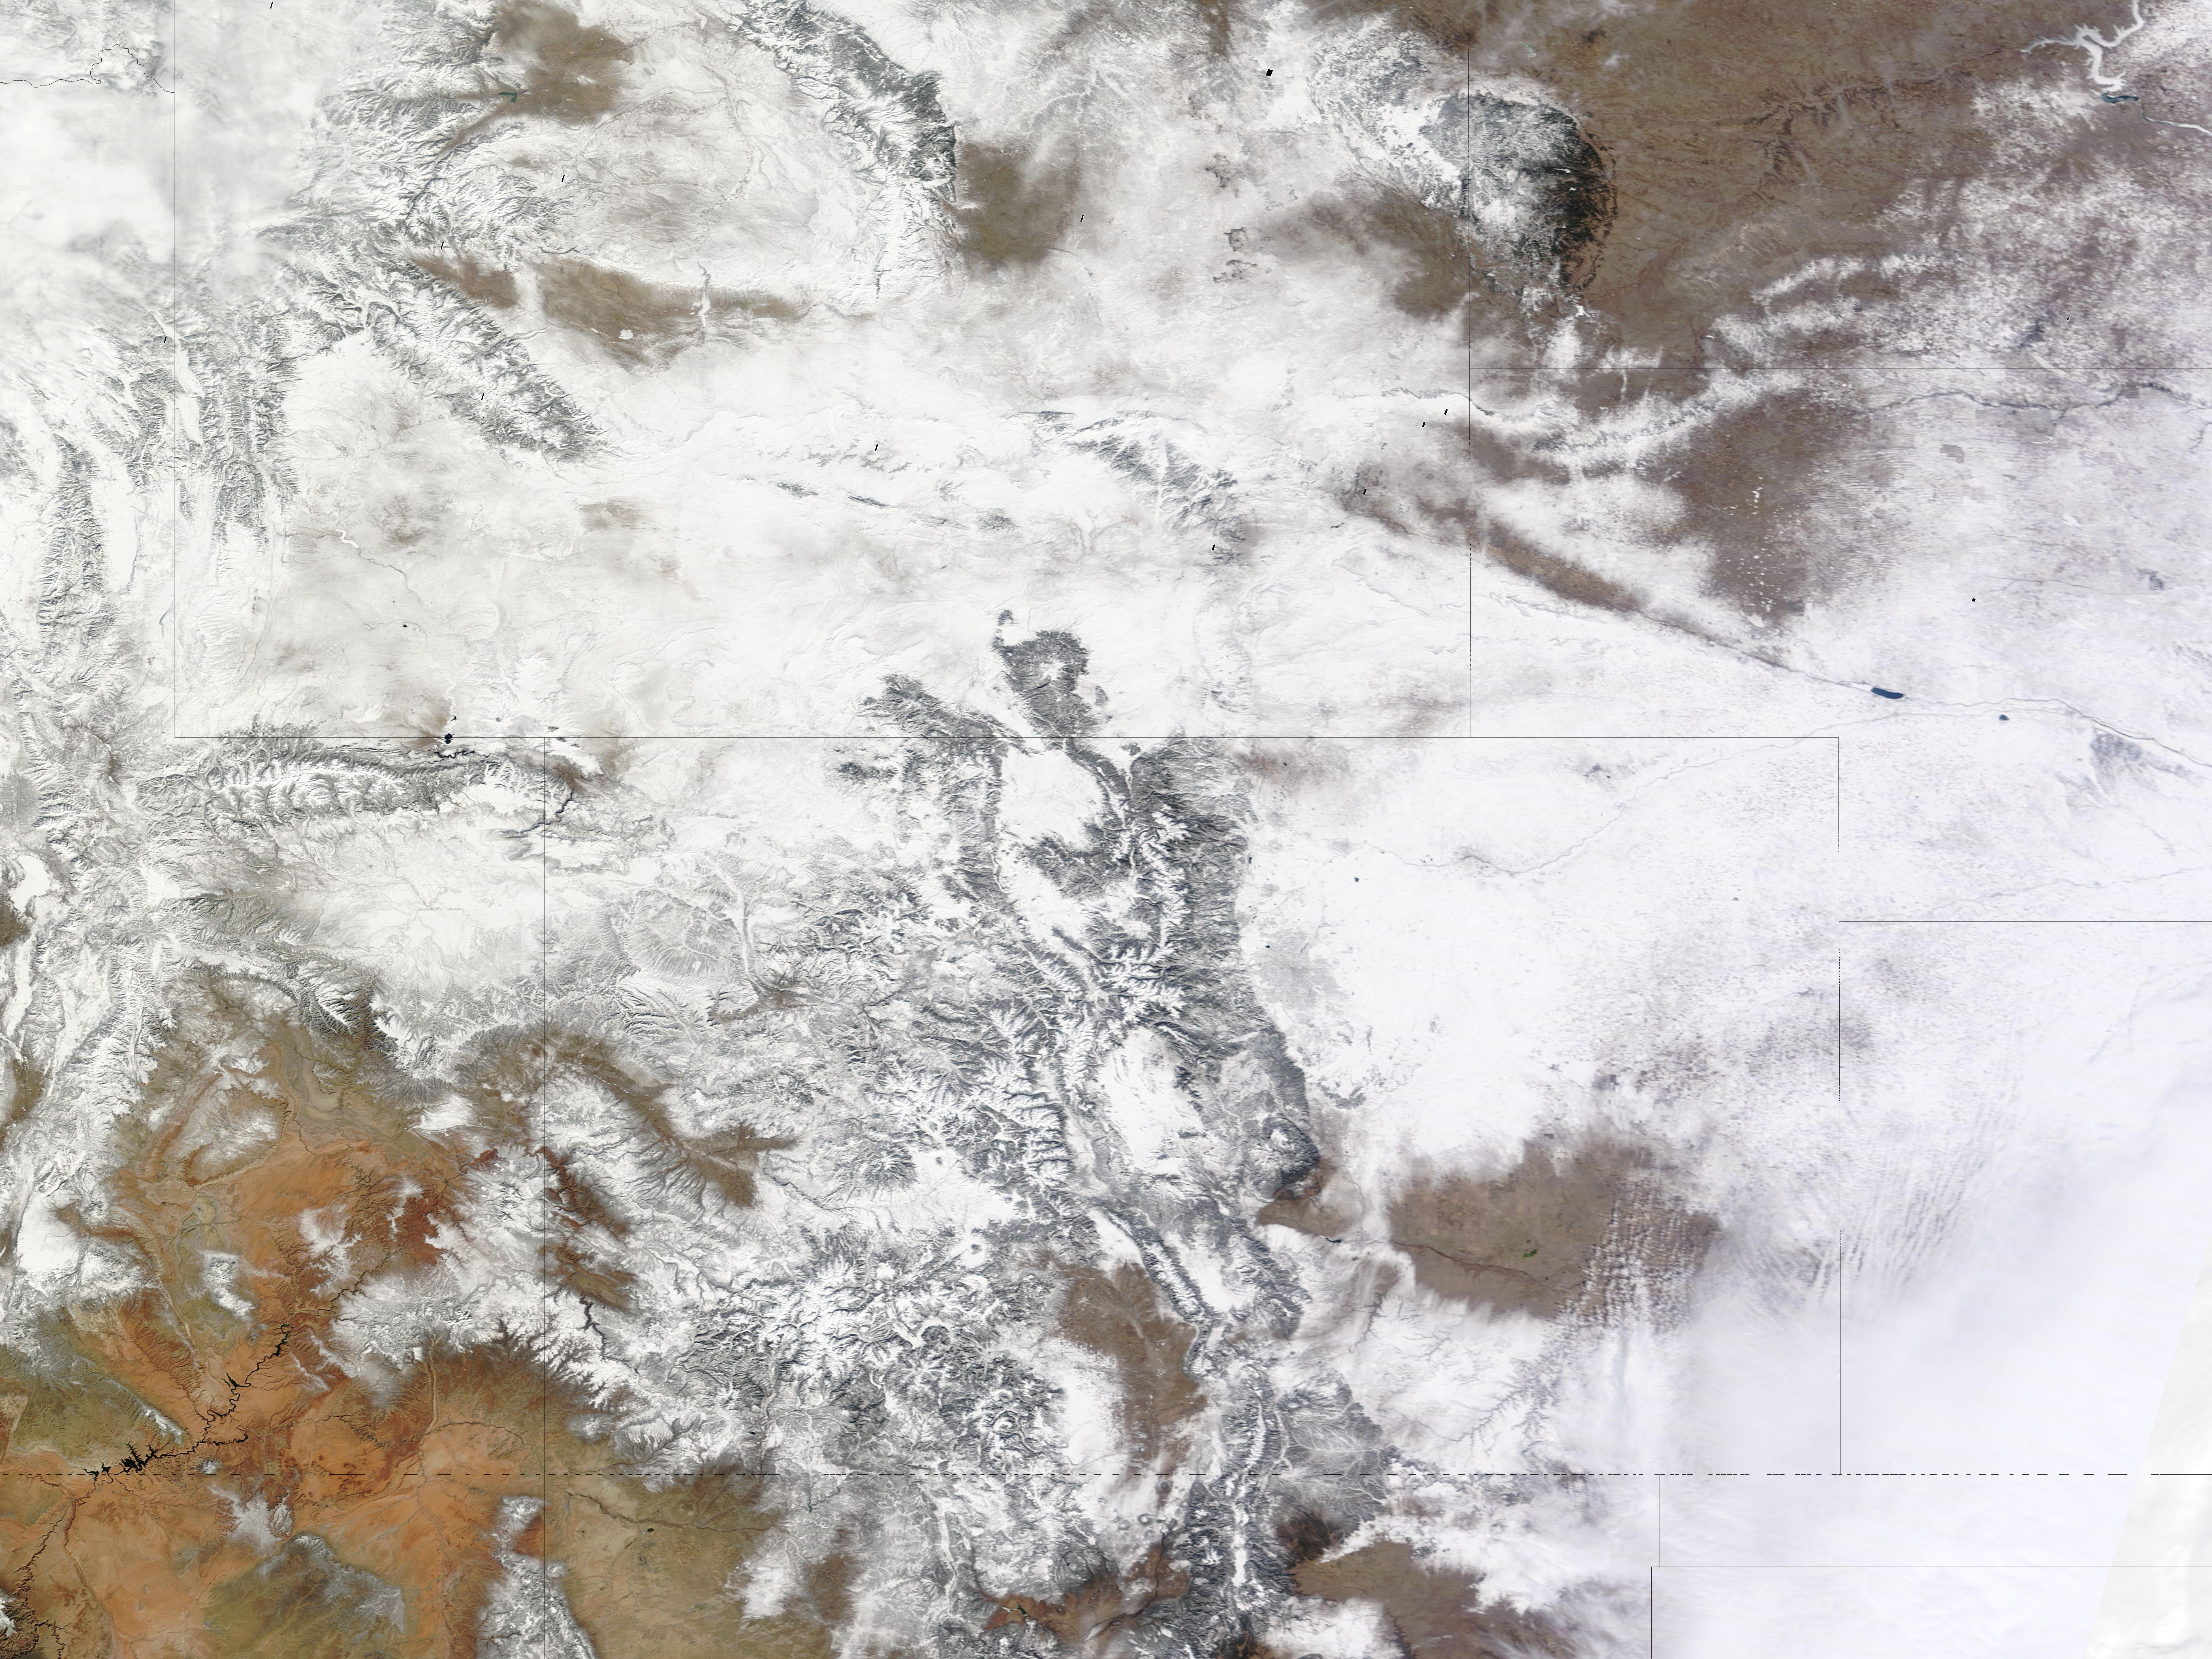 Another Snowstorm Strikes Western States - related image preview